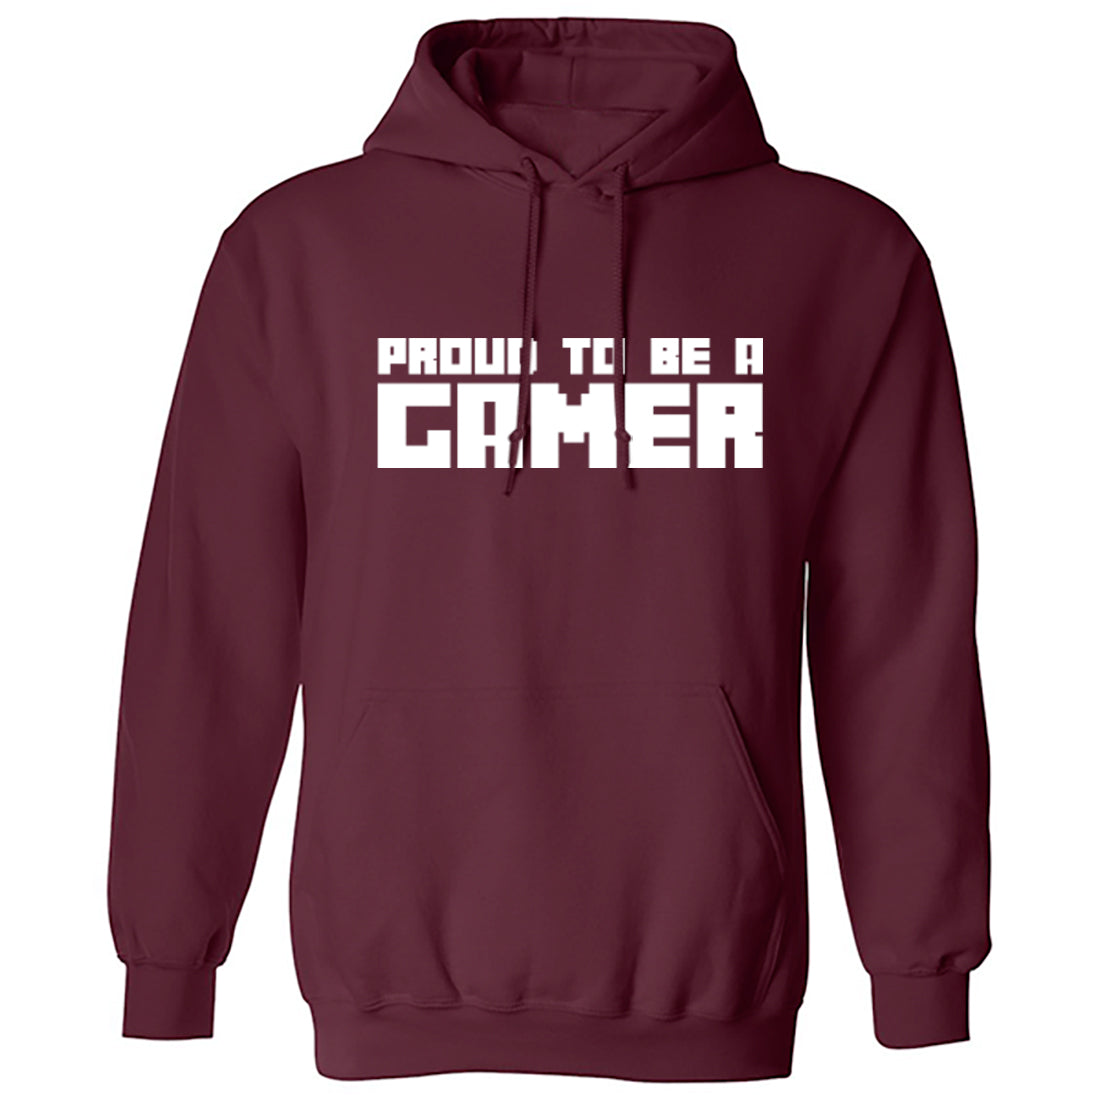 Proud To Be A Gamer Unisex Hoodie K0980 - Illustrated Identity Ltd.